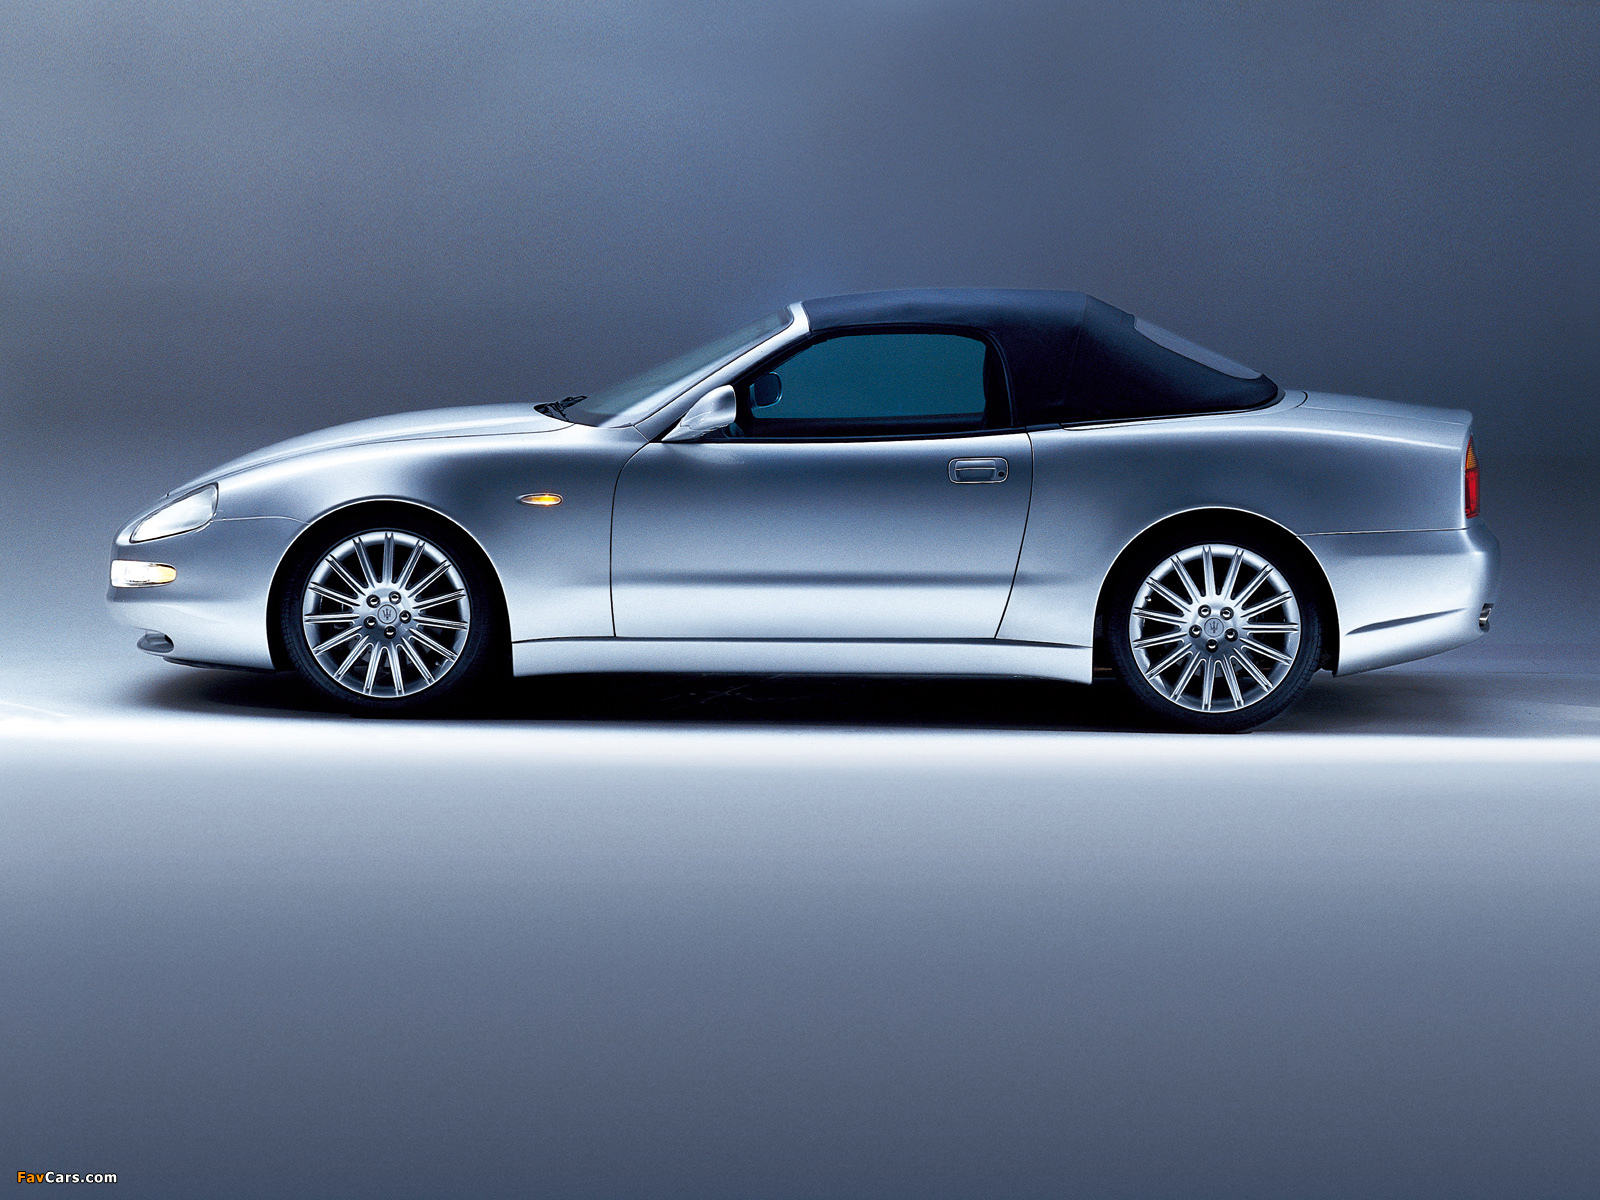 2001 Maserati Spyder - pictures, information and specs ...